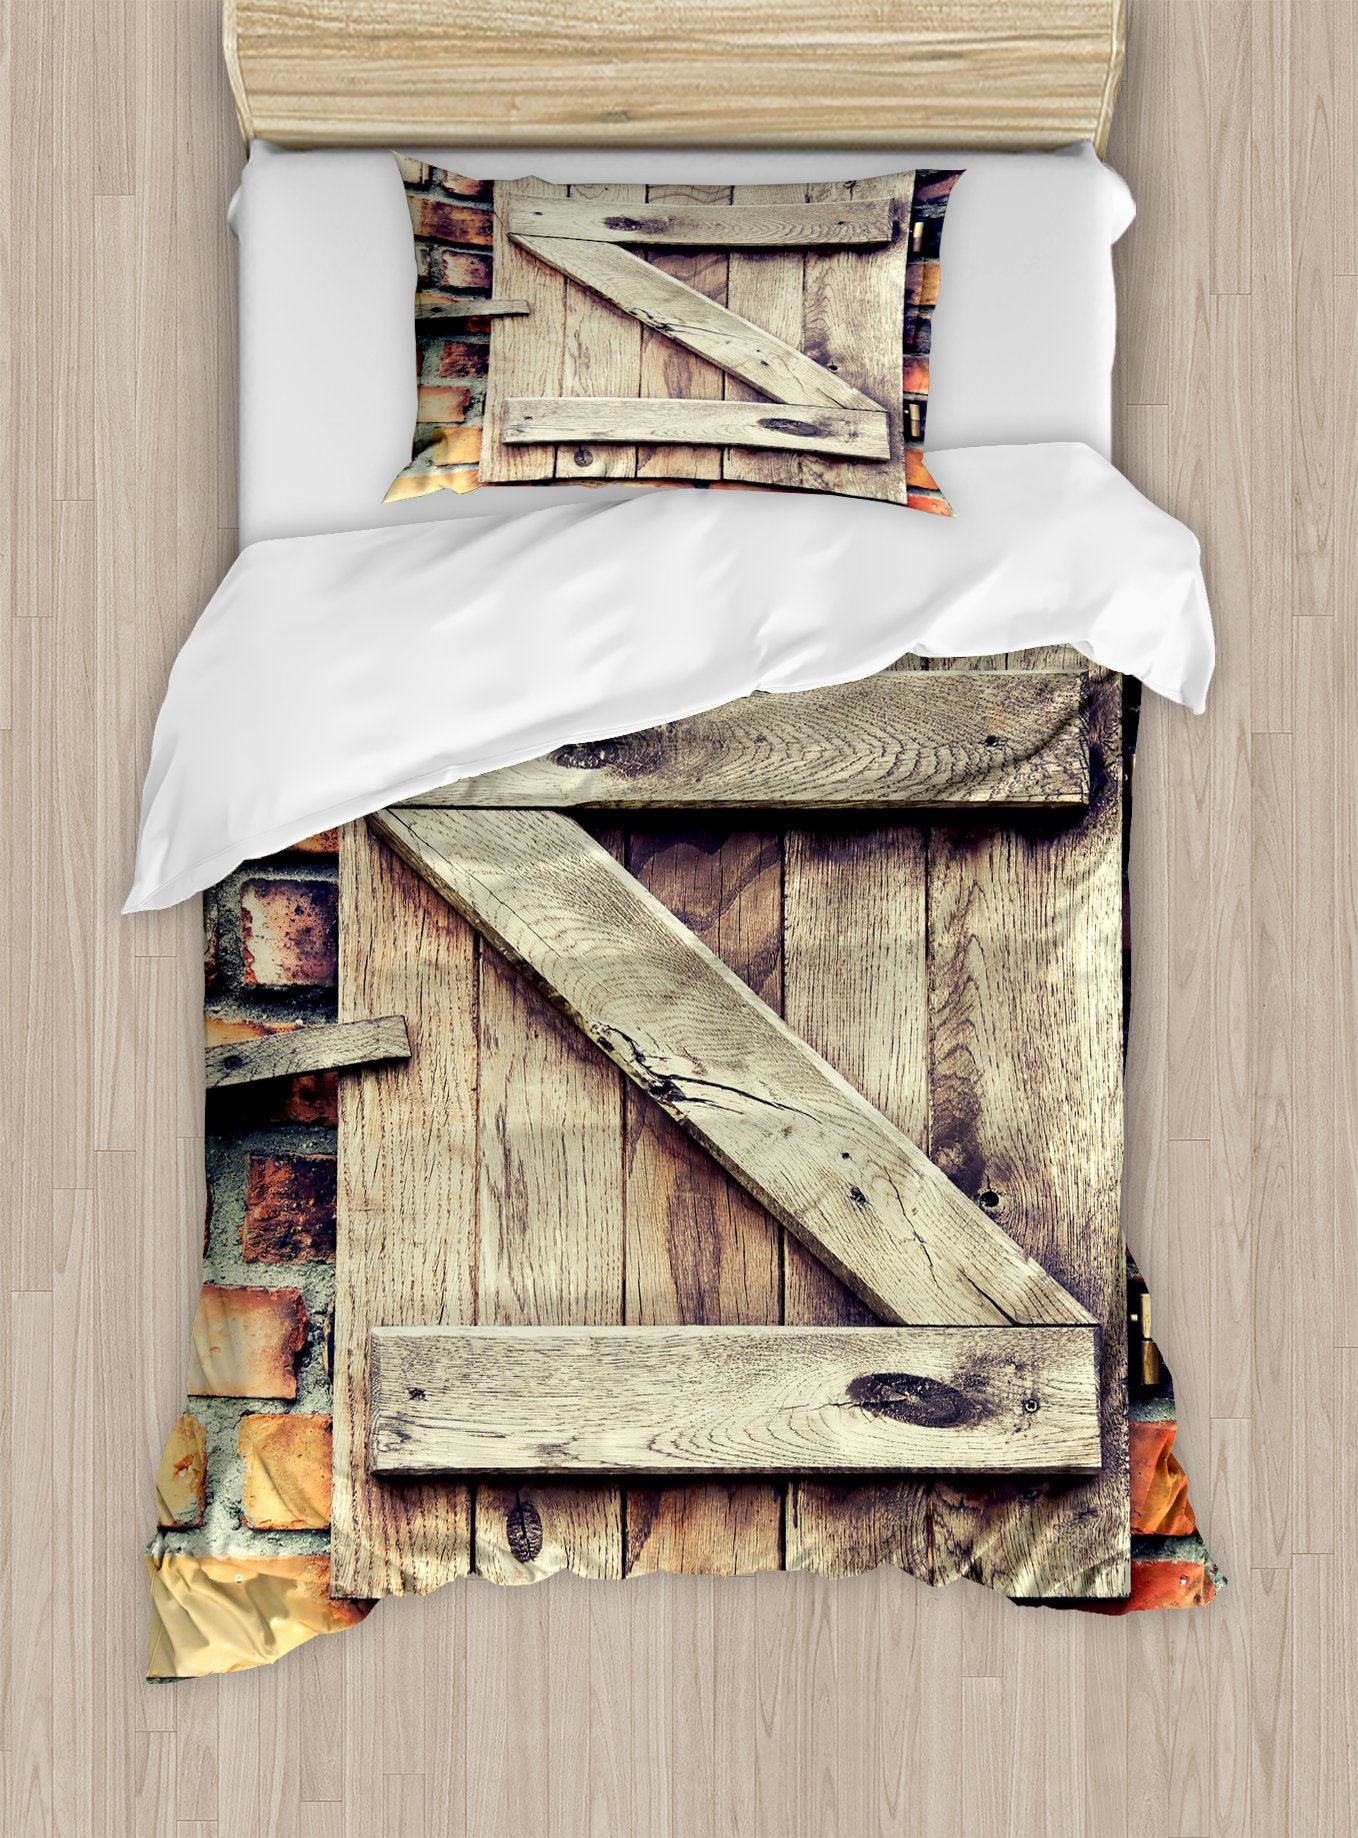 Ambesonne Rustic Duvet Cover Set Twin Size, Natural Material Wooden Window of a Red Brick Country House Idyllic Pastoral Theme, Decorative 2 Piece Bedding Set with 1 Pillow Sham, Pale Brown